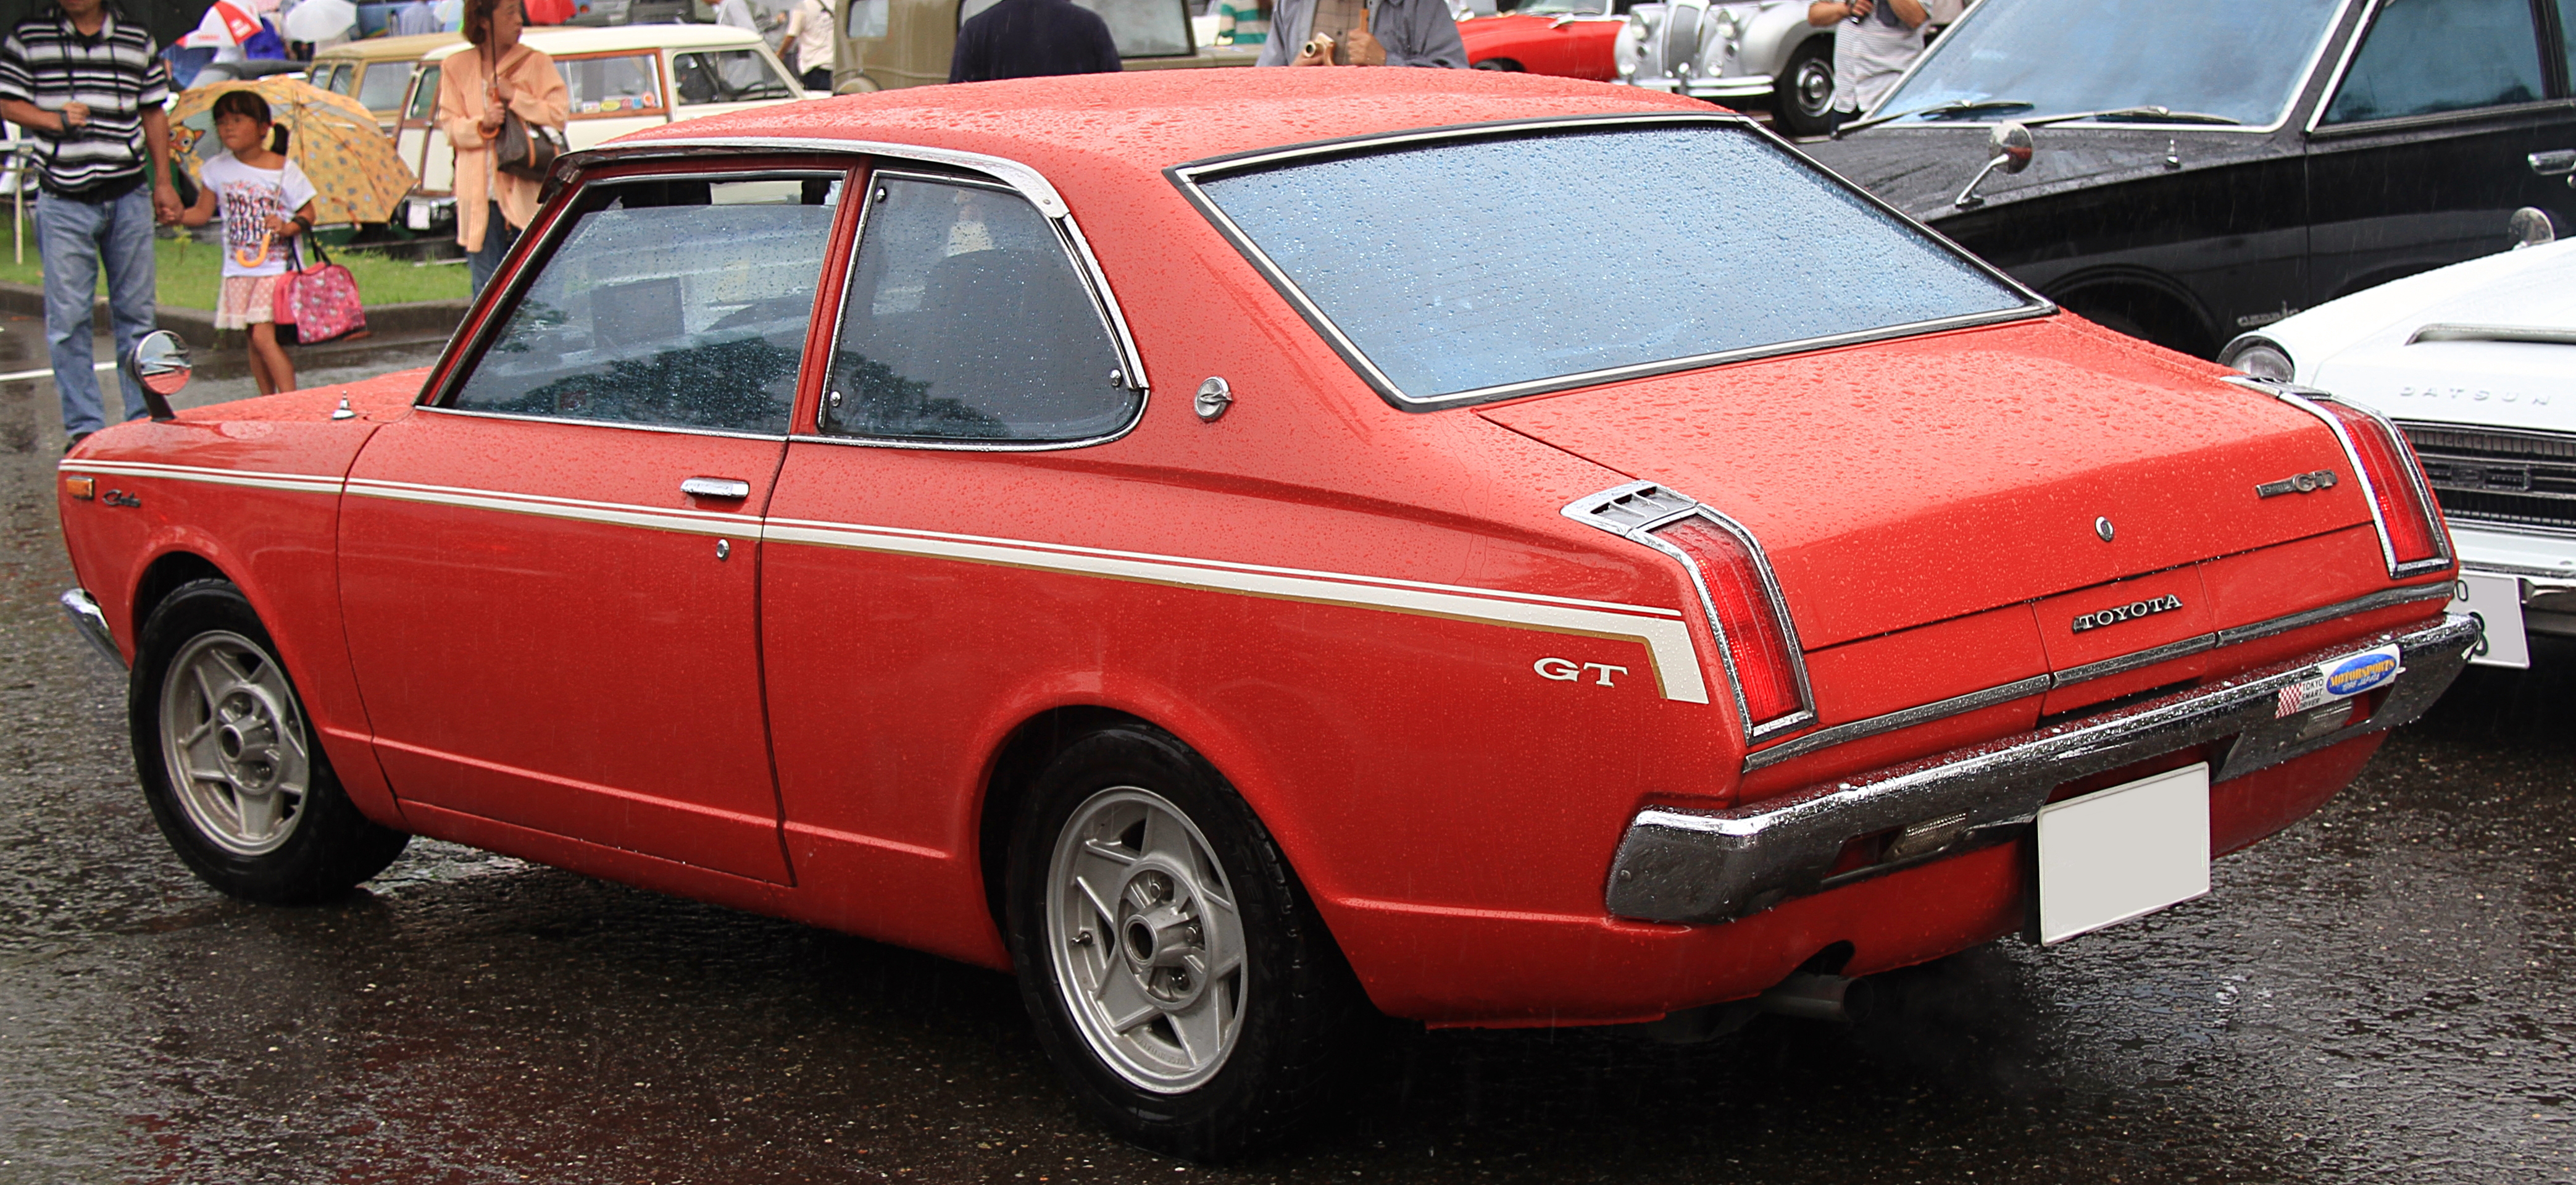 File 1972 Toyota Carina 1600gt Rear Jpg Wikimedia Commons